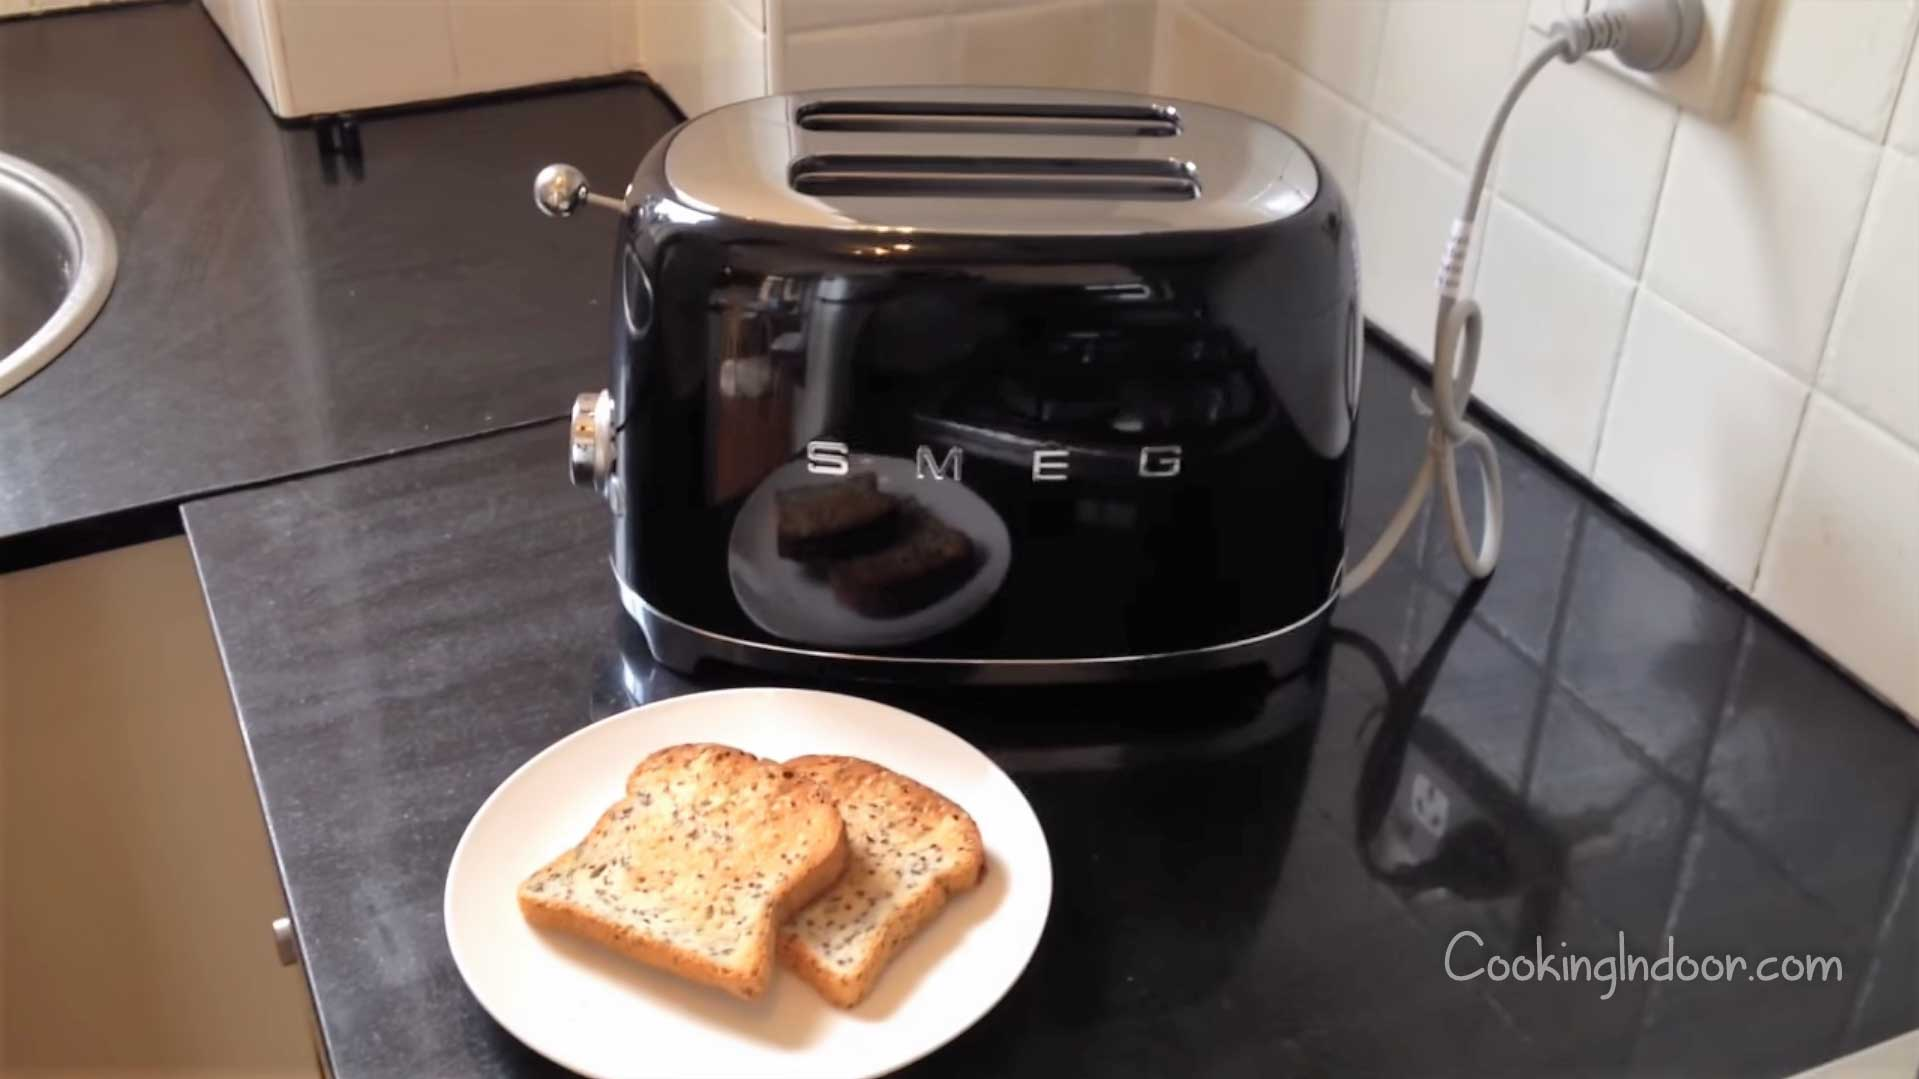 Best retro toaster